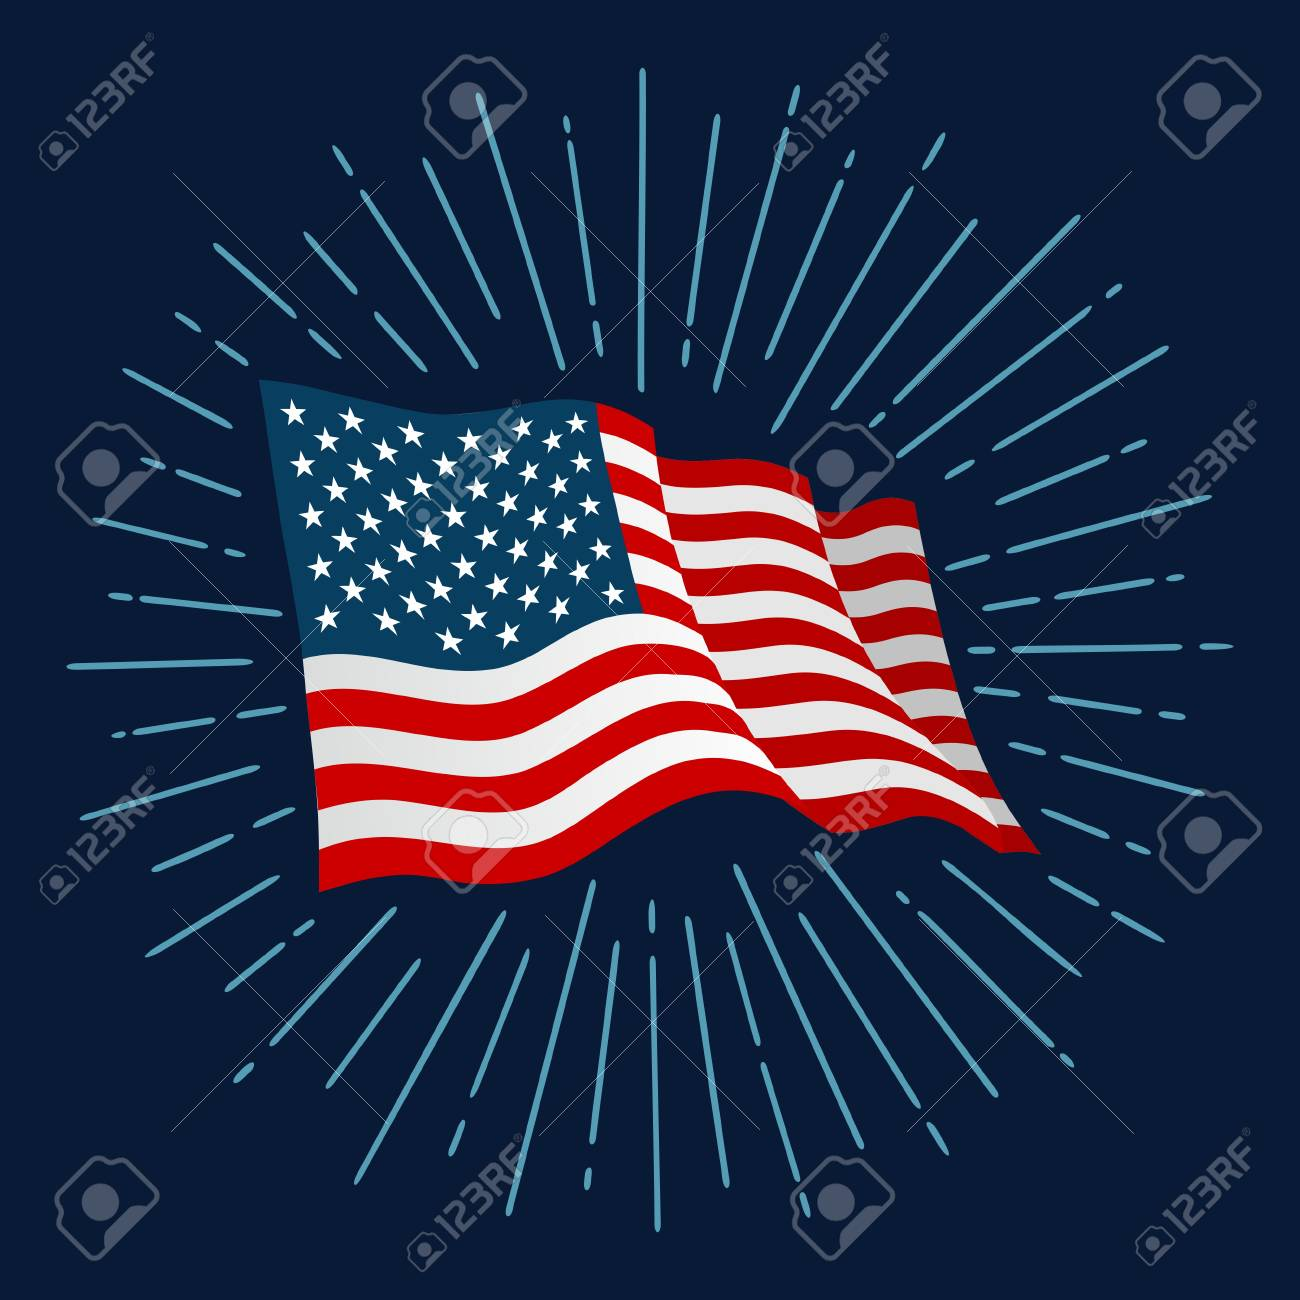 cd09a438a18 Firework and american flag for banner independence day. Stock Vector -  98266103